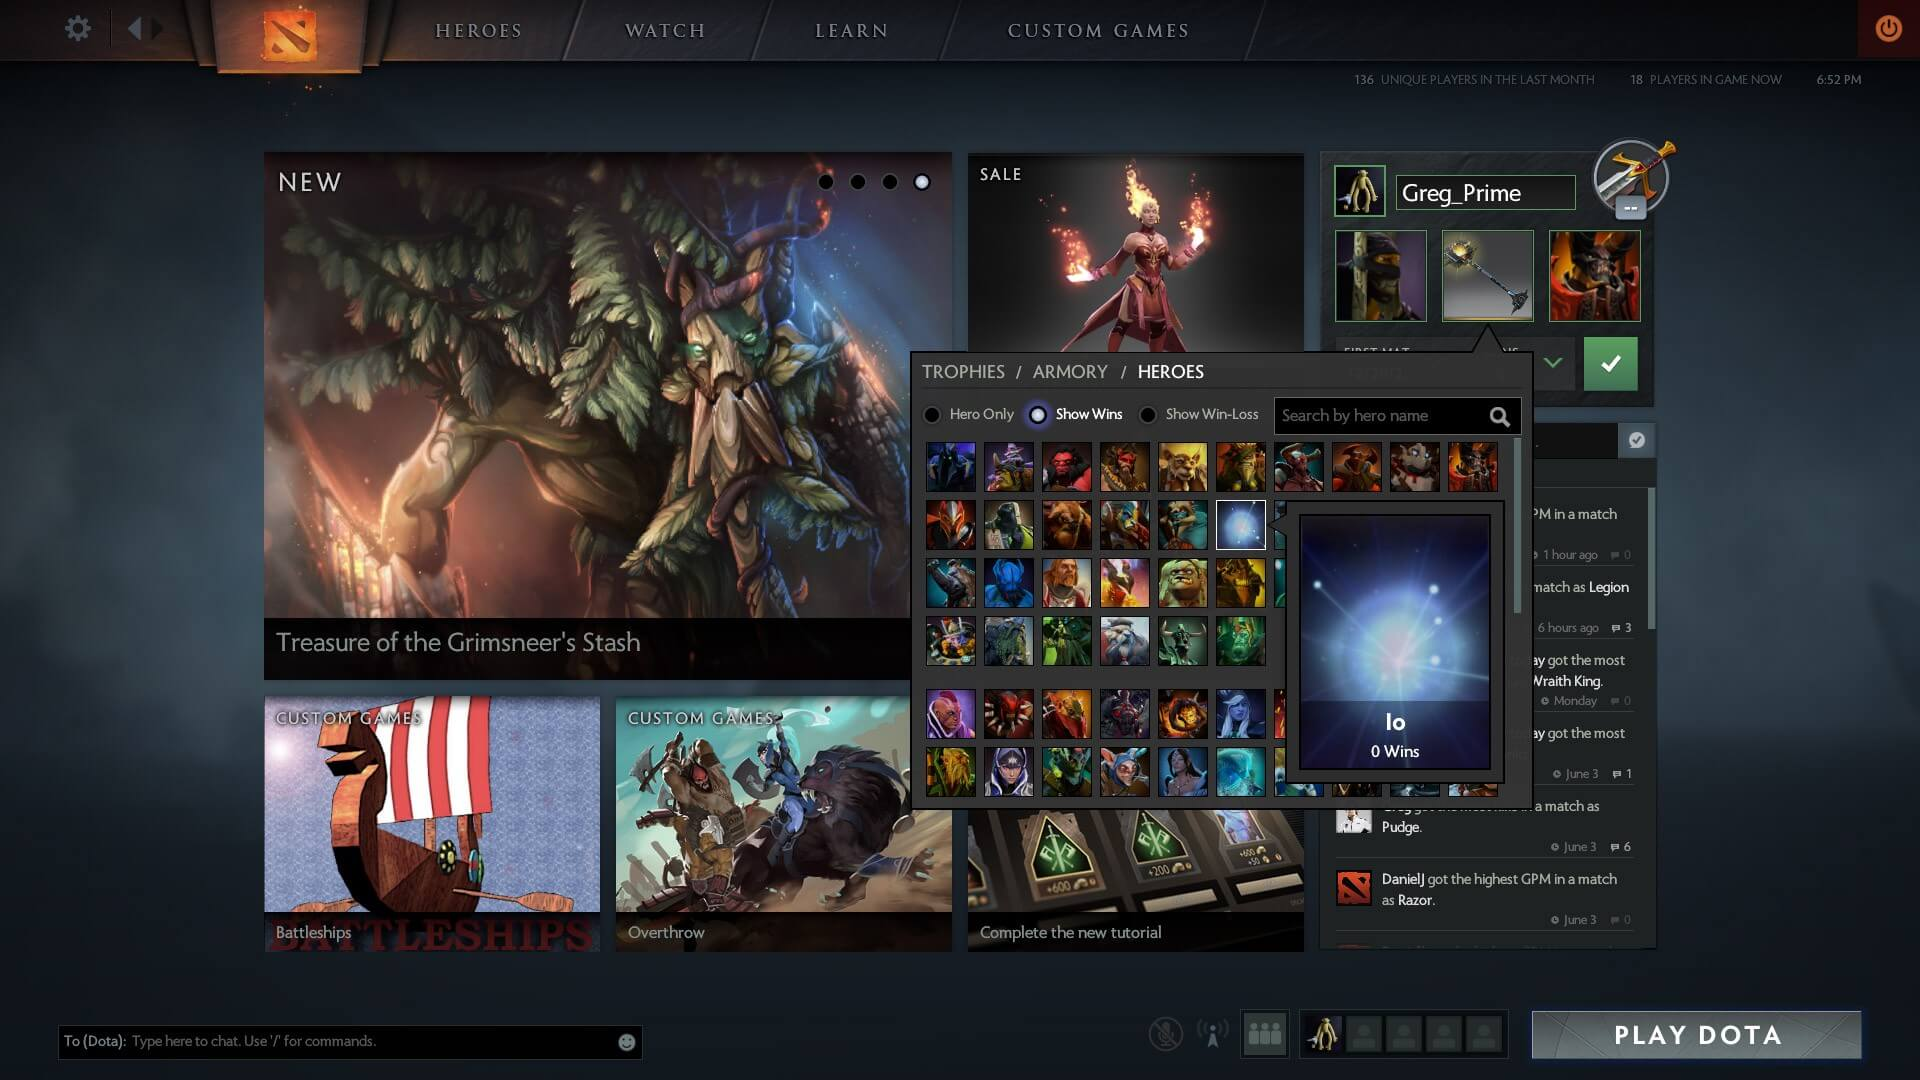 Valve-Announces-Dota-2-Reborn-Beta-with-New-Engine-New-Interface-484202-3